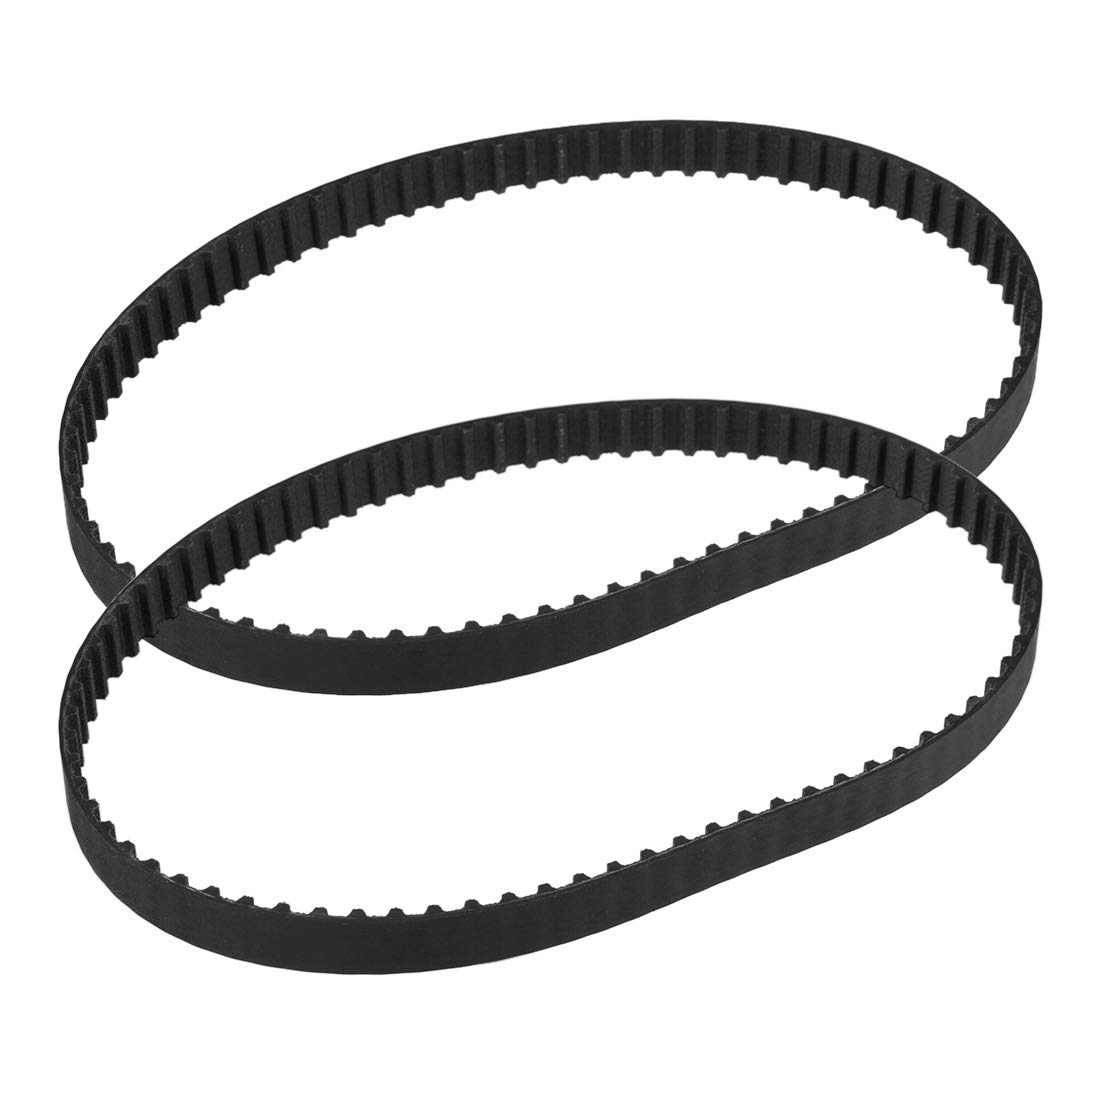 uxcell 2pcs 154XL Rubber Timing Belt Synchronous Closed Loop Belt Timing Pulley Tools 10mm Width